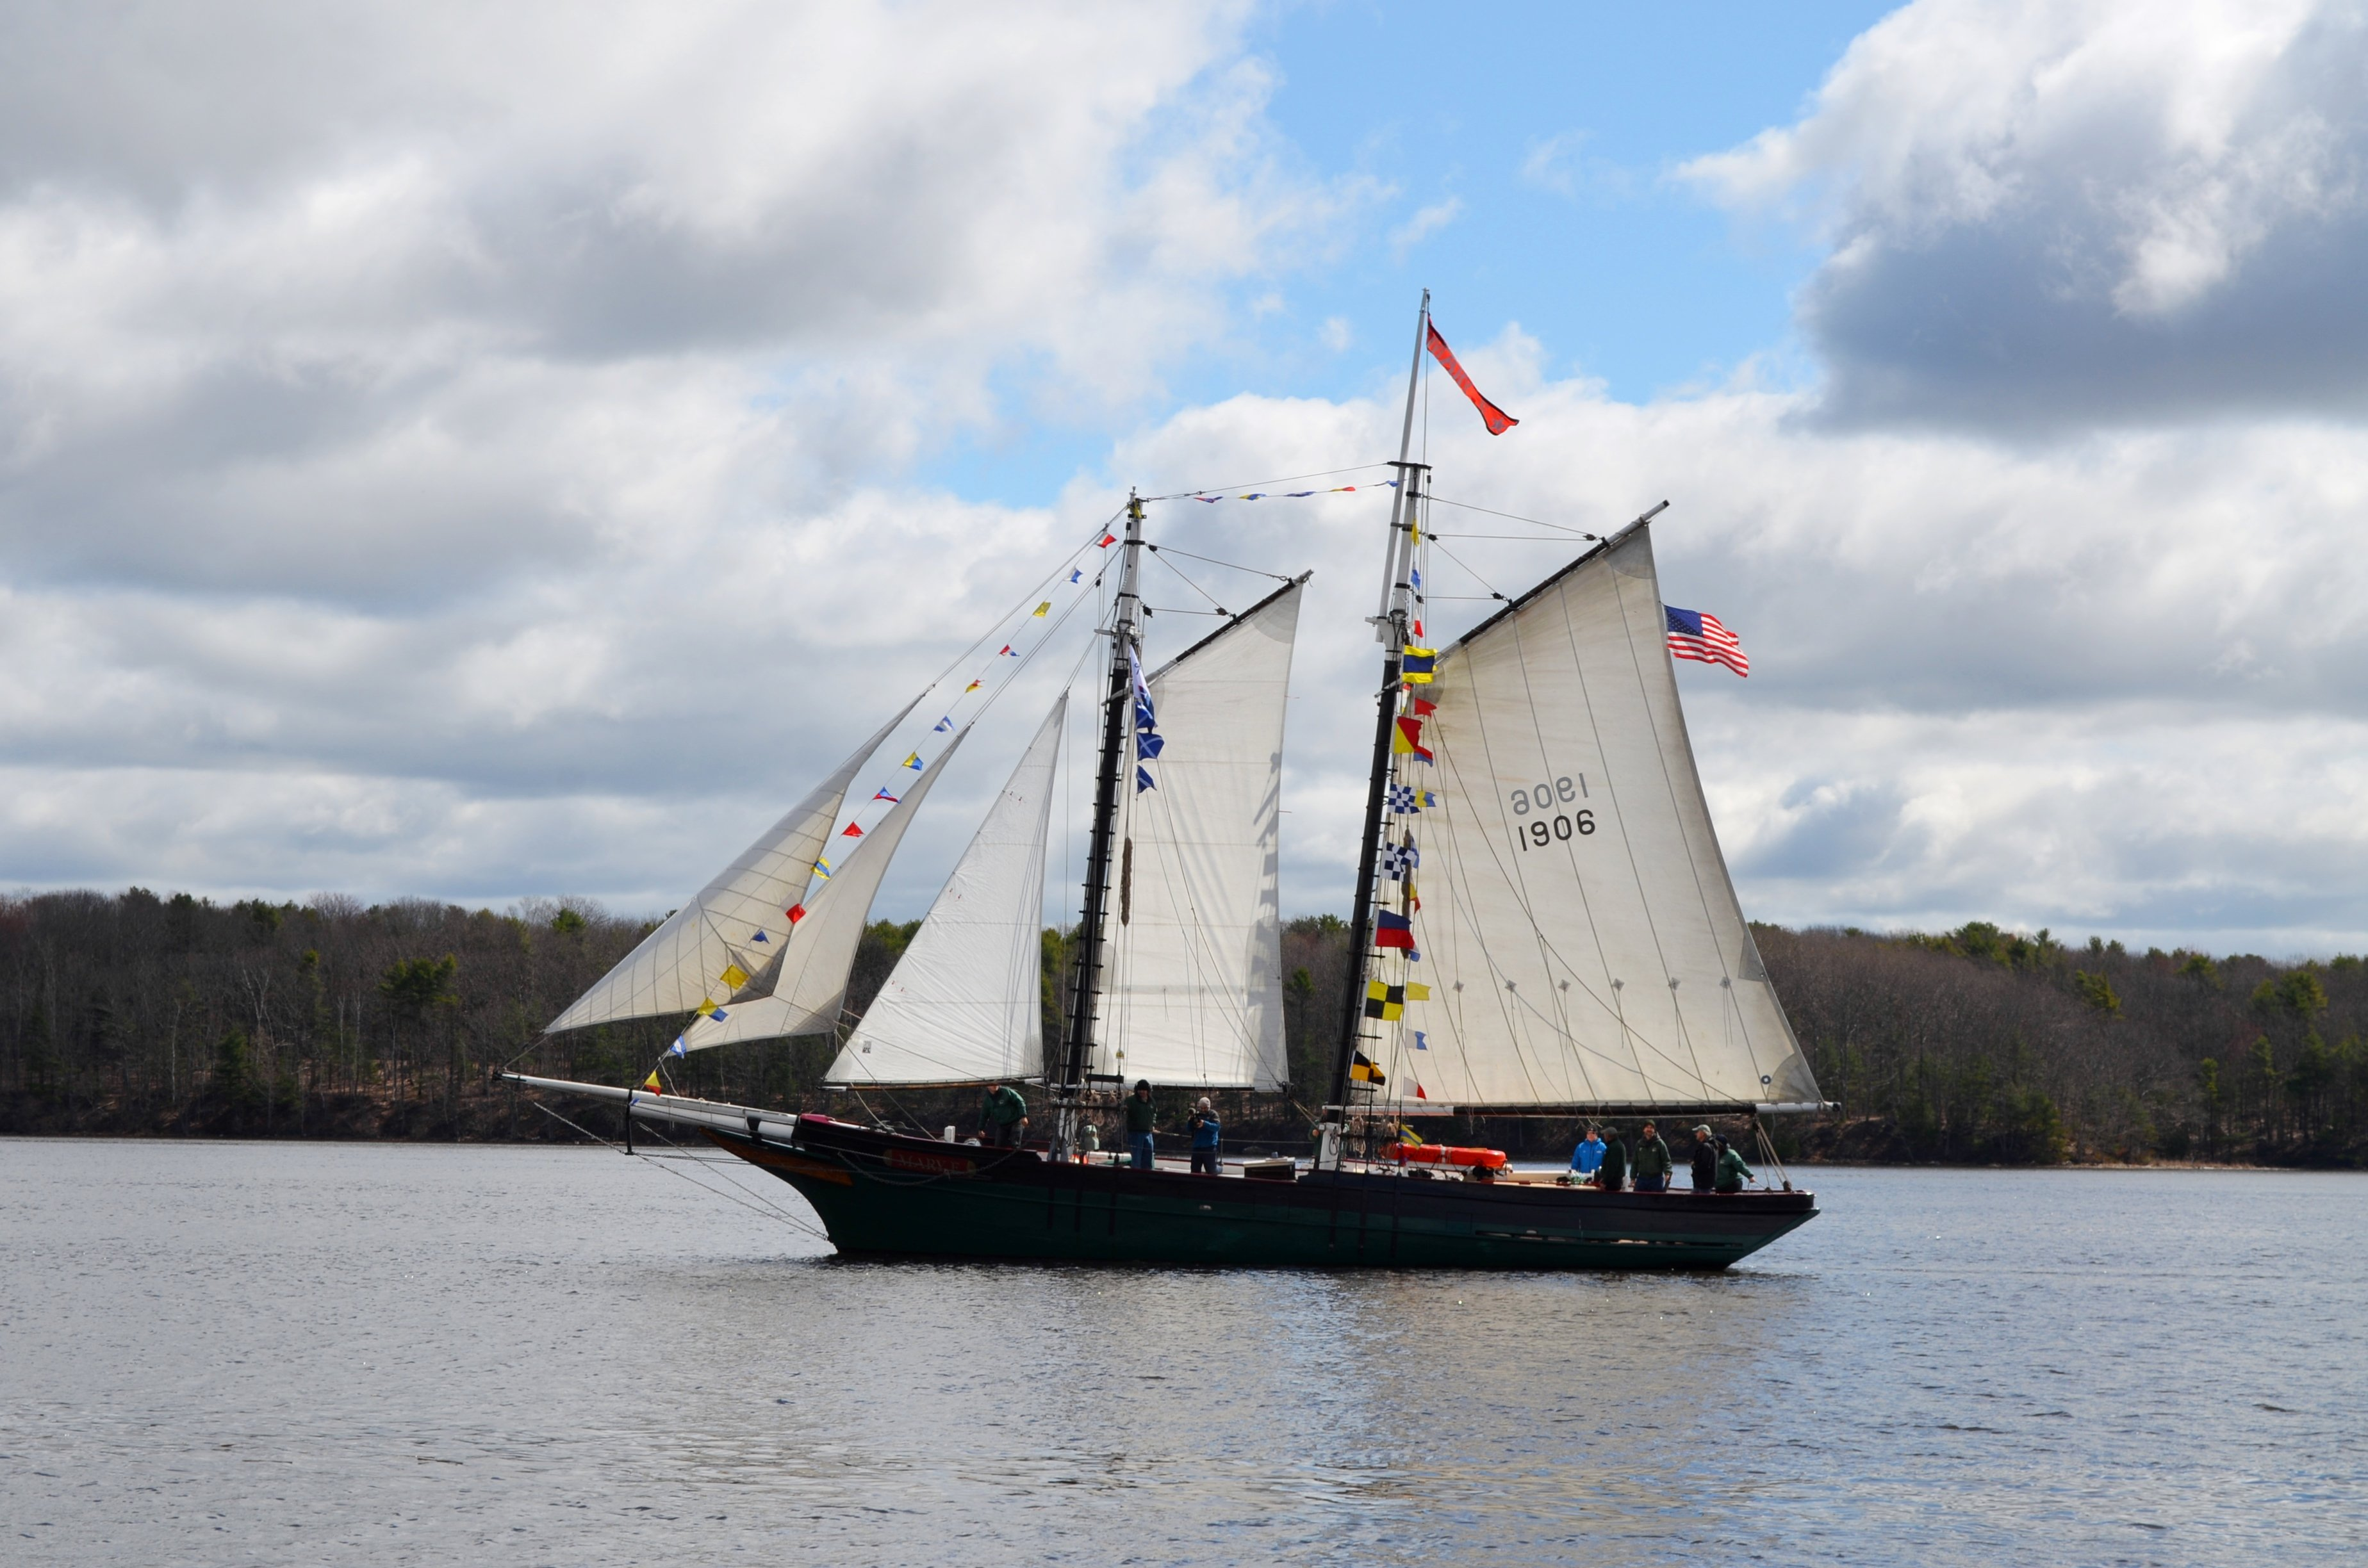 New in 2018: go aboard the historic schooner Mary E, the oldest Maine-built fishing vessel still alfloat!